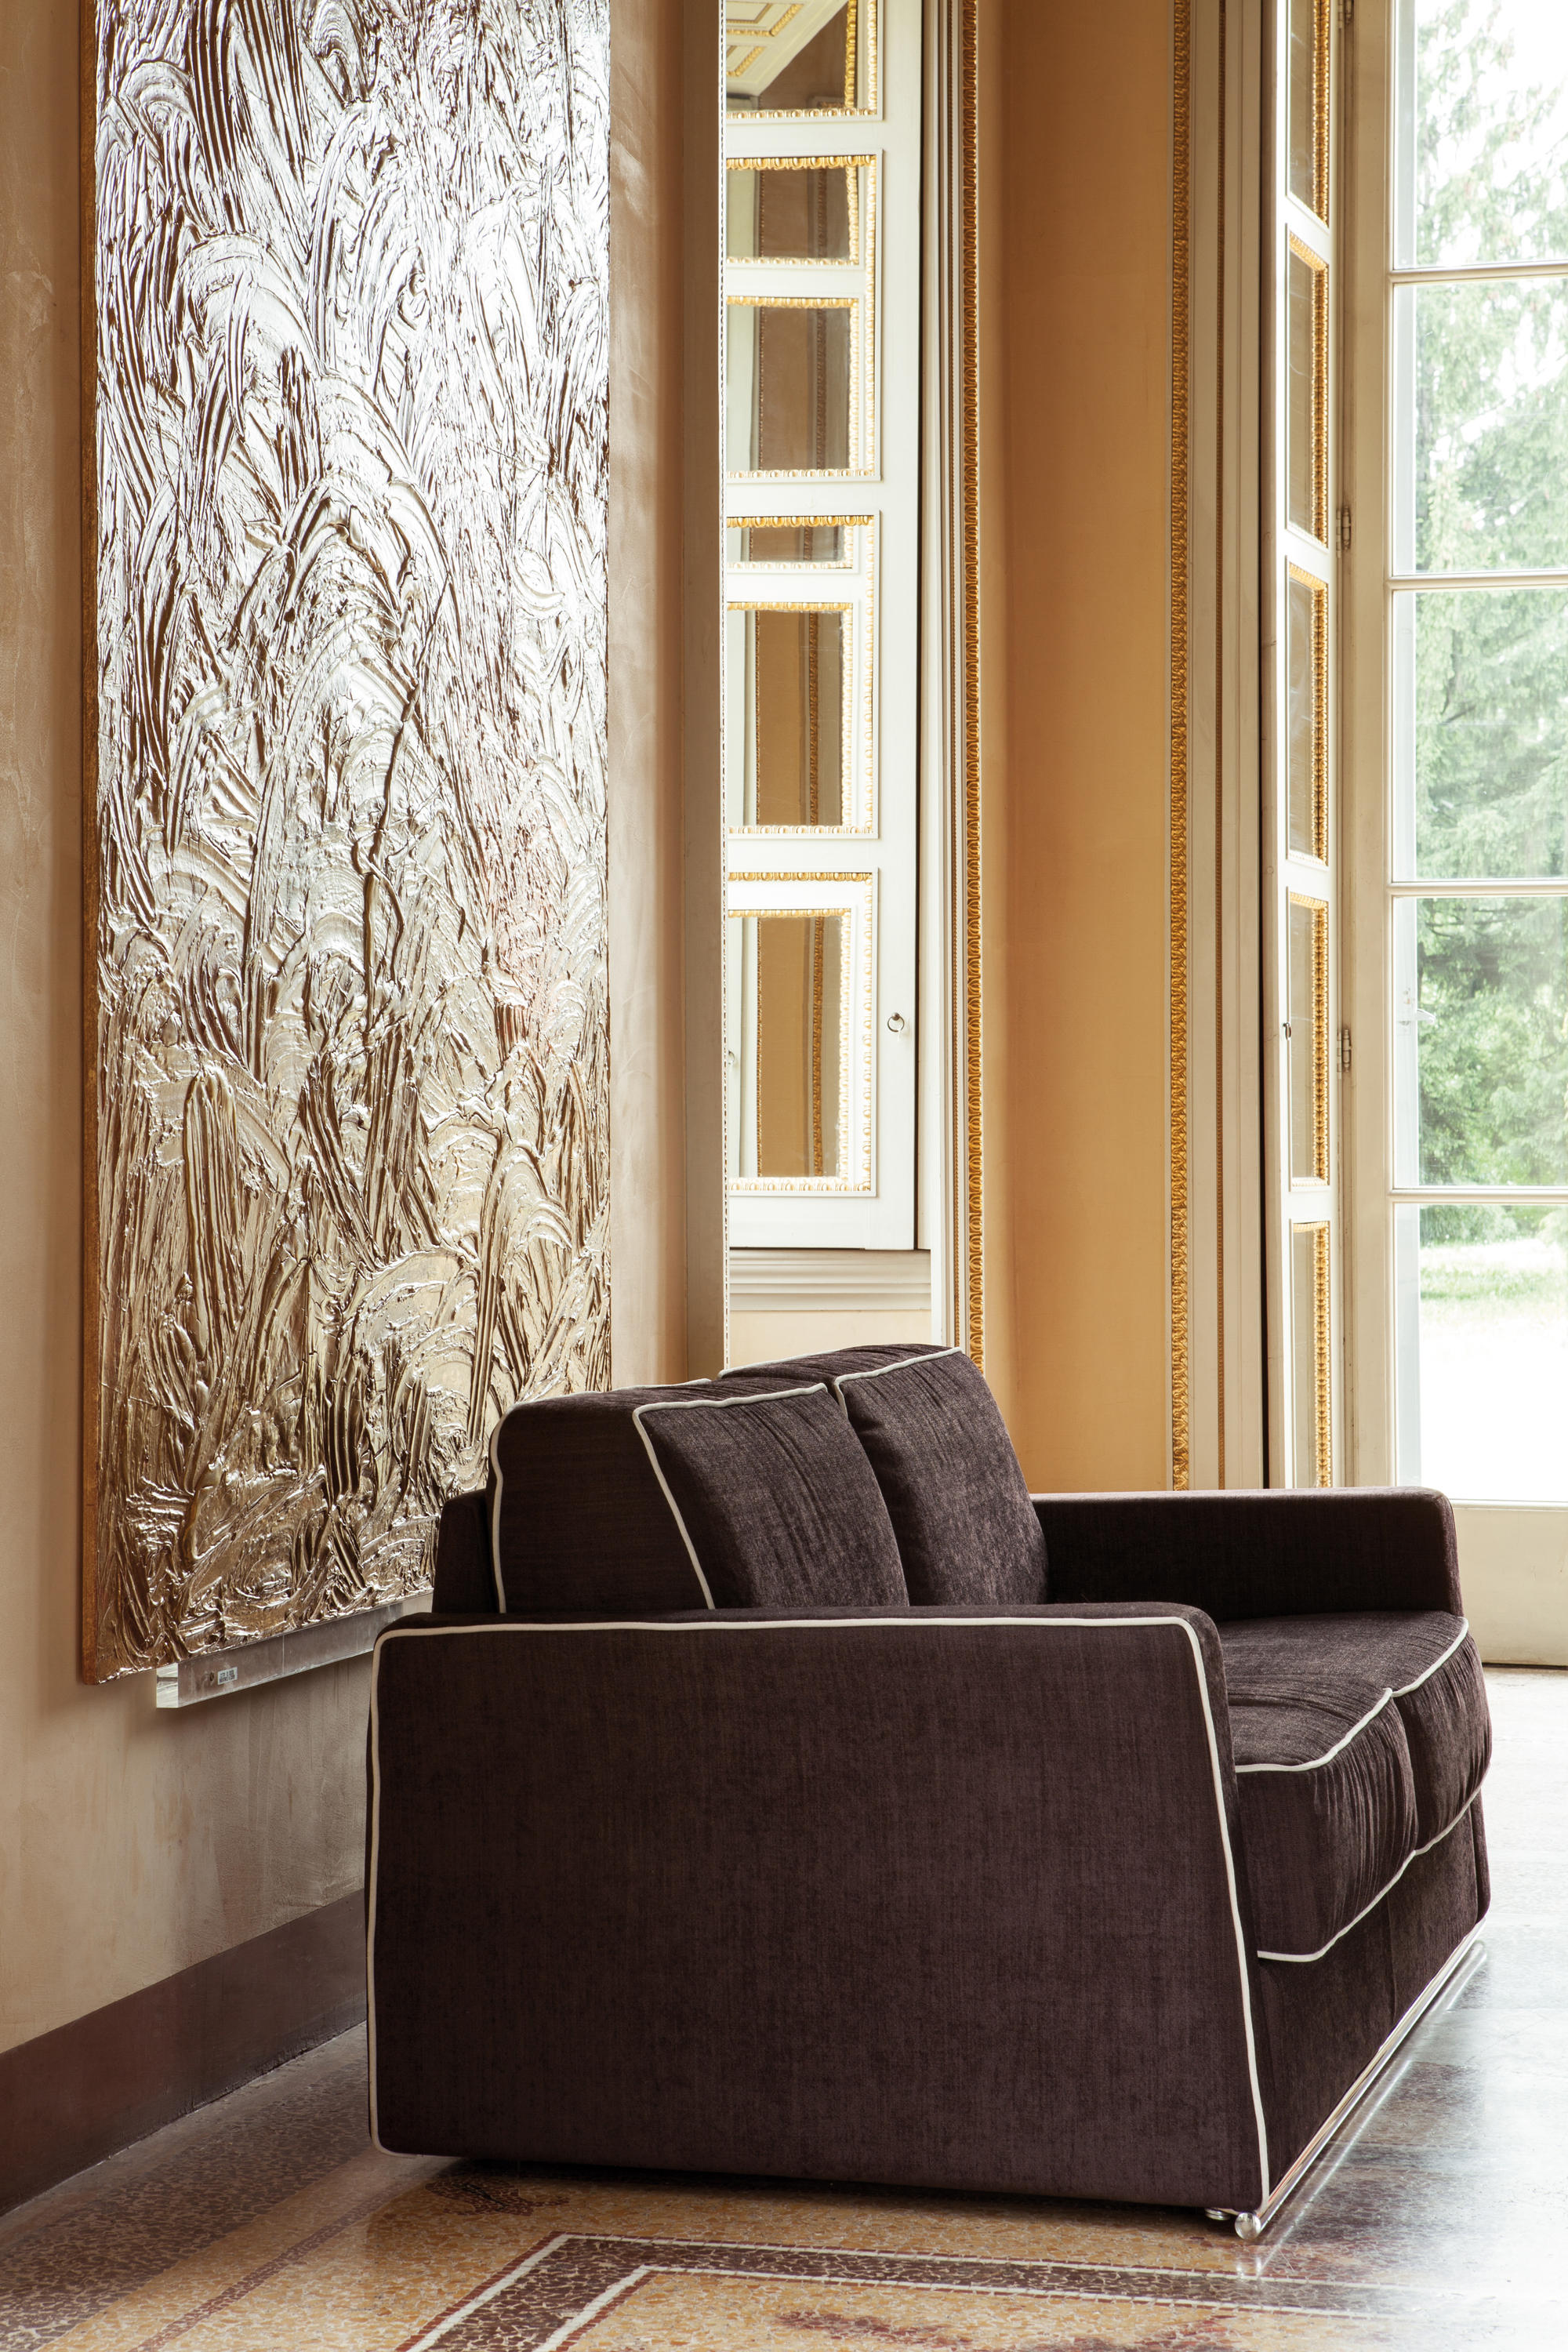 retrohs sofa beds from milano bedding architonic. Black Bedroom Furniture Sets. Home Design Ideas